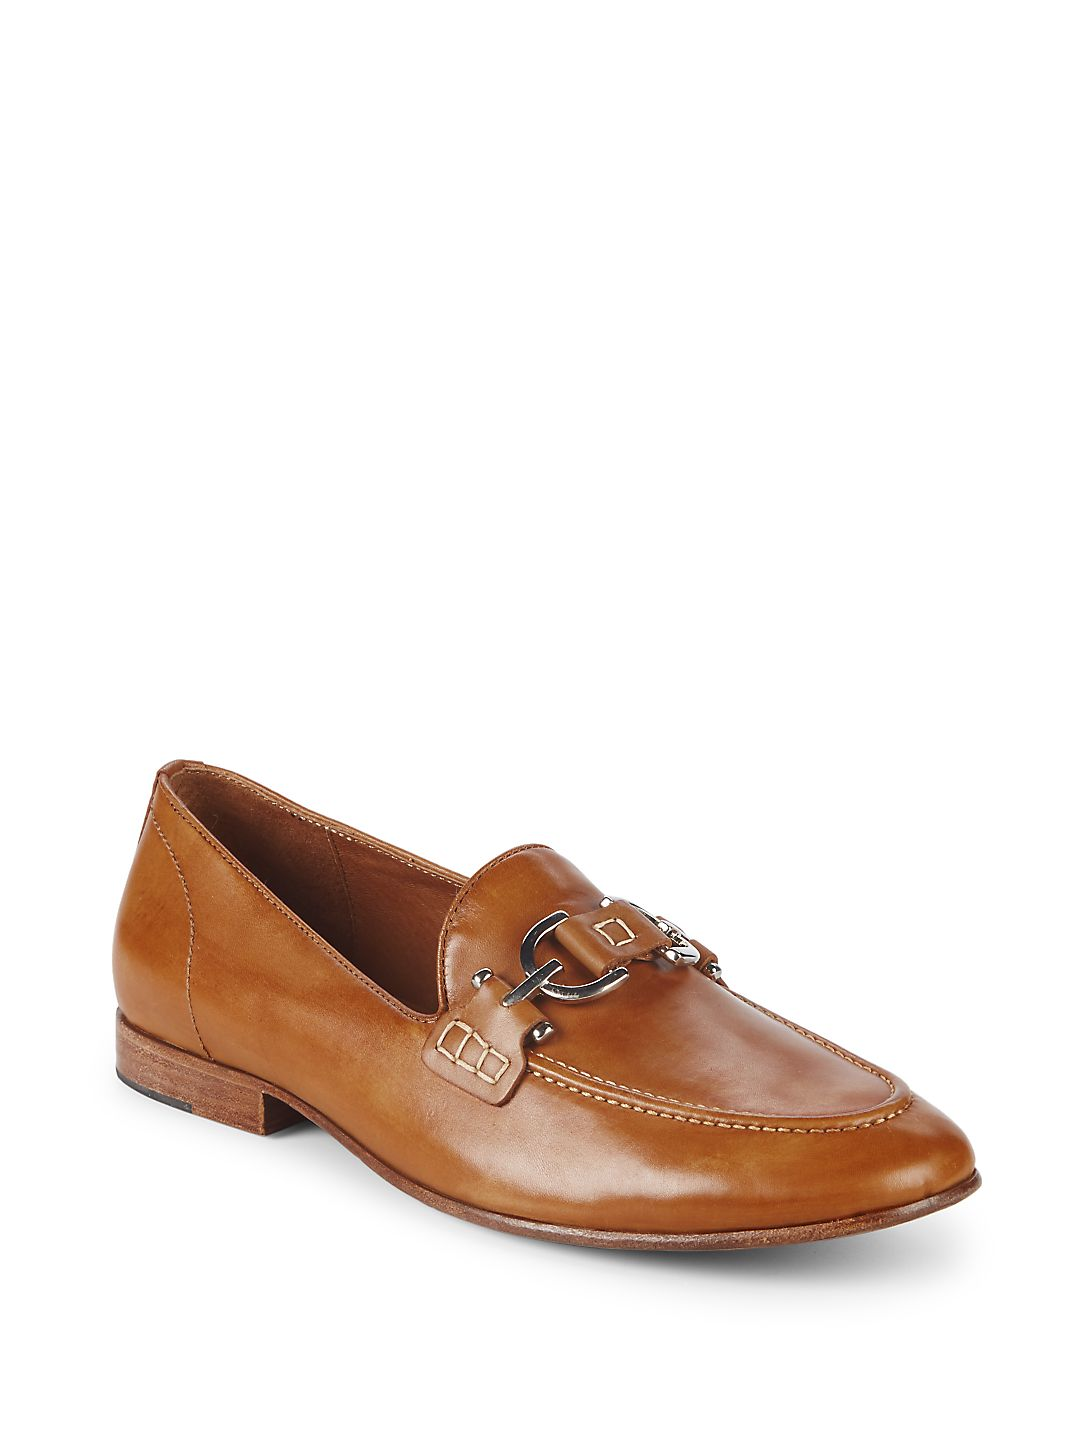 Moritz Leather Loafers